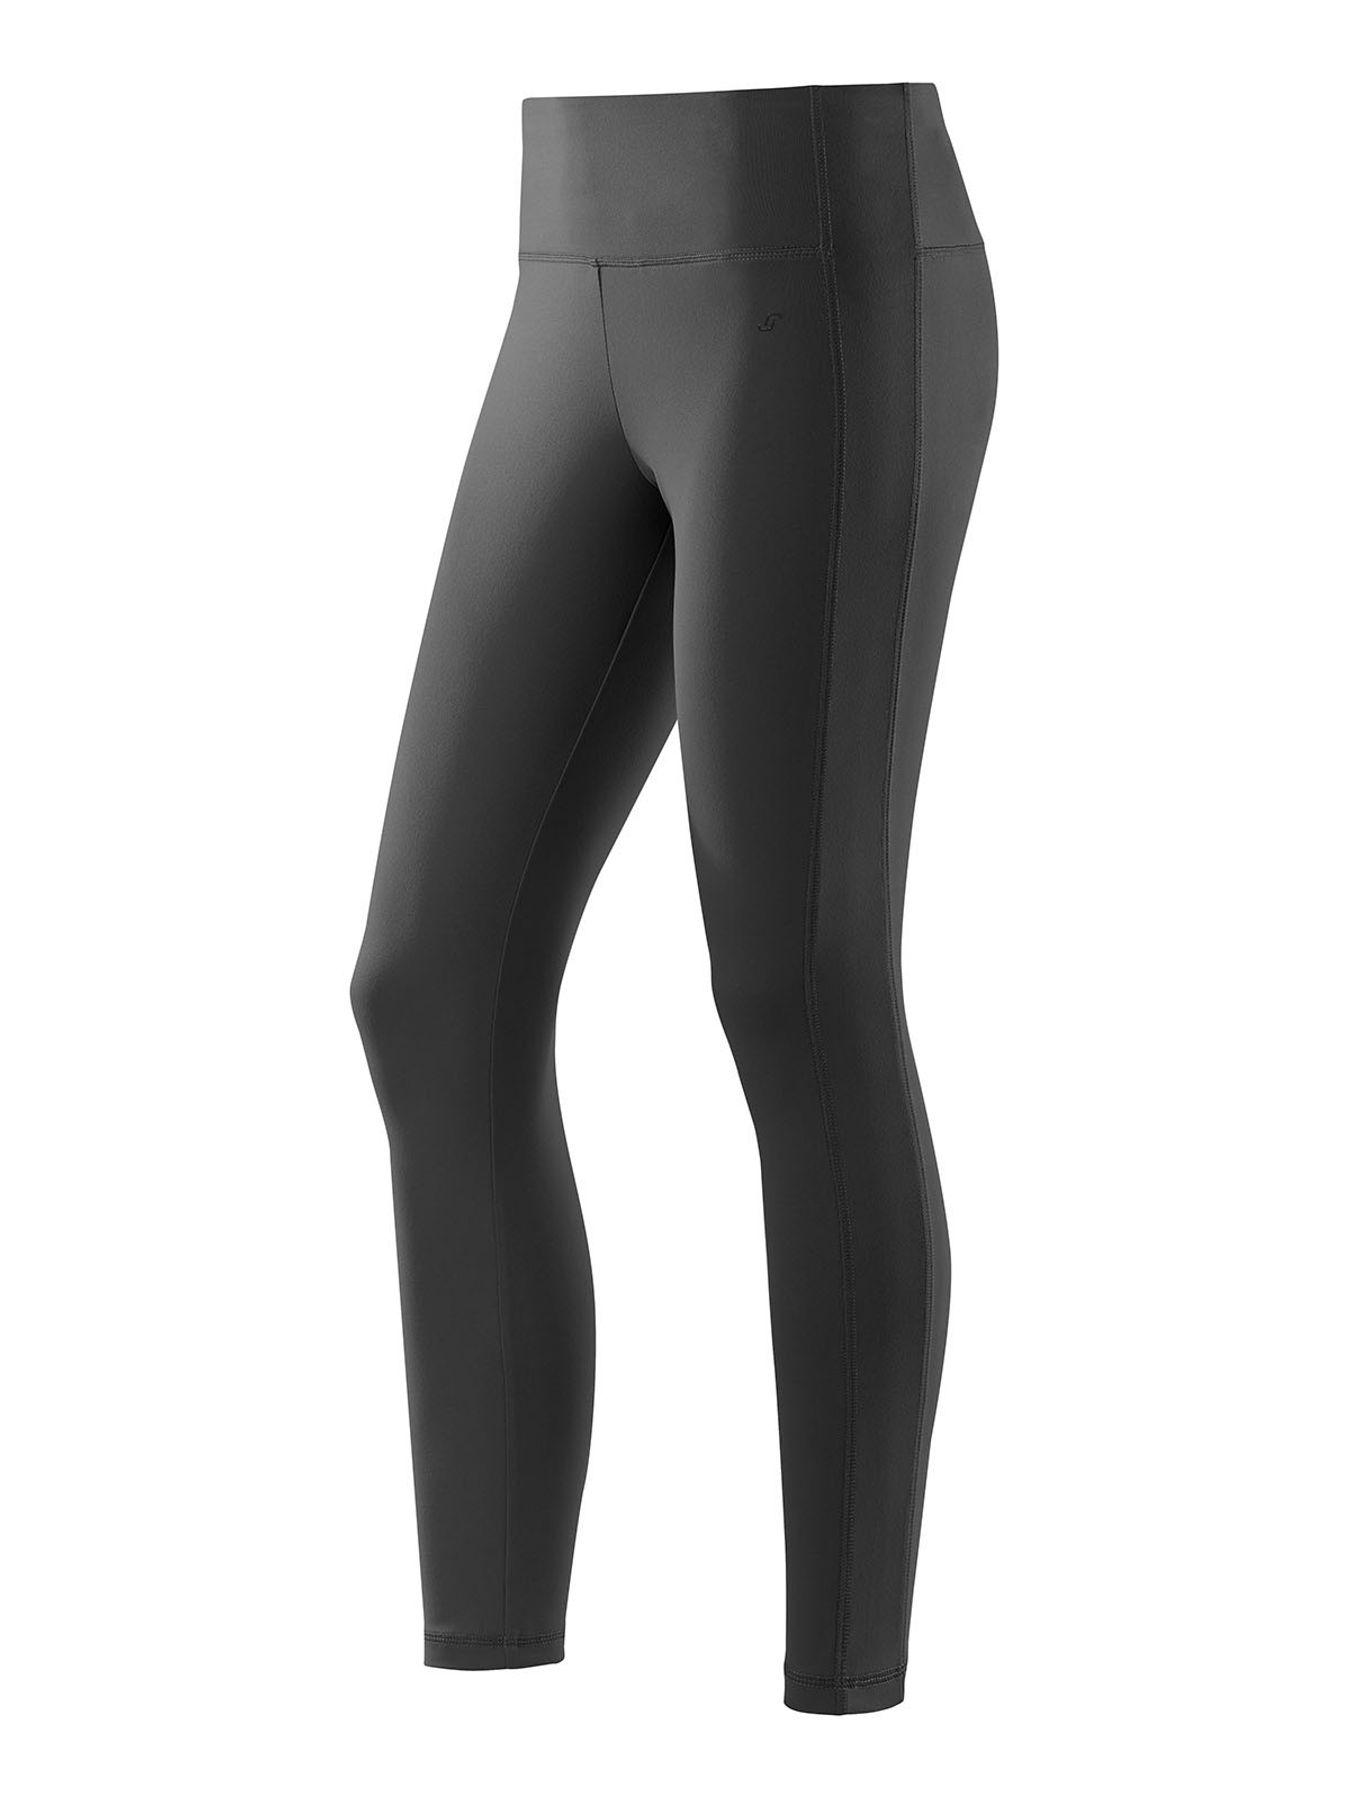 Joy - Bodyfit - Damen Sport Hose mit Shaping-Effekt, Michella (30141) – Bild 1